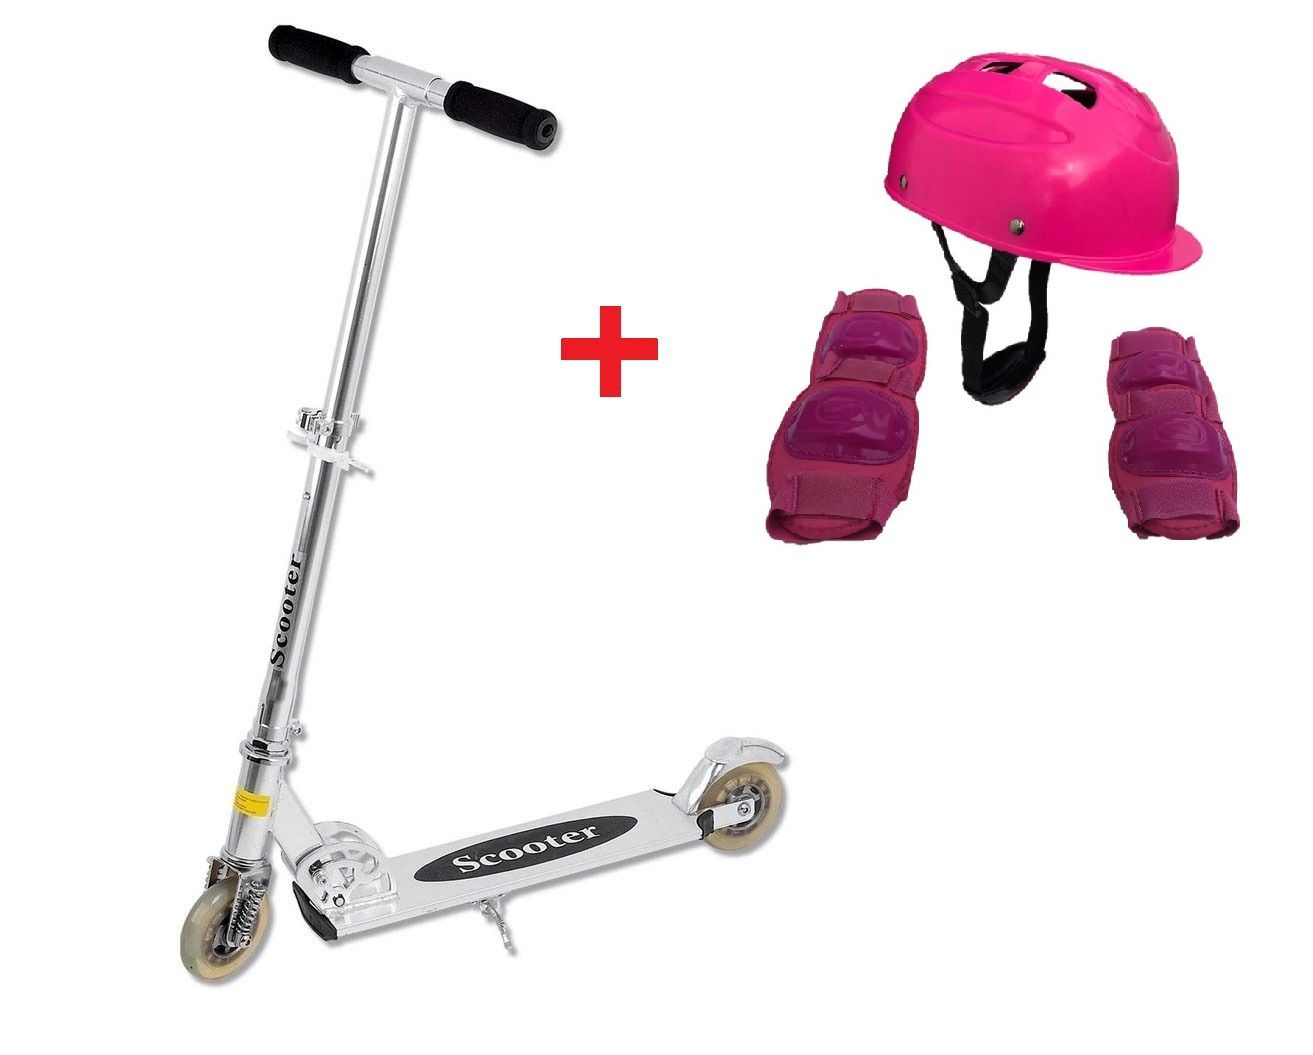 Kit Patinete Turbo Racing Infantil + Kit Segurança Para Patinete E Skate Preto